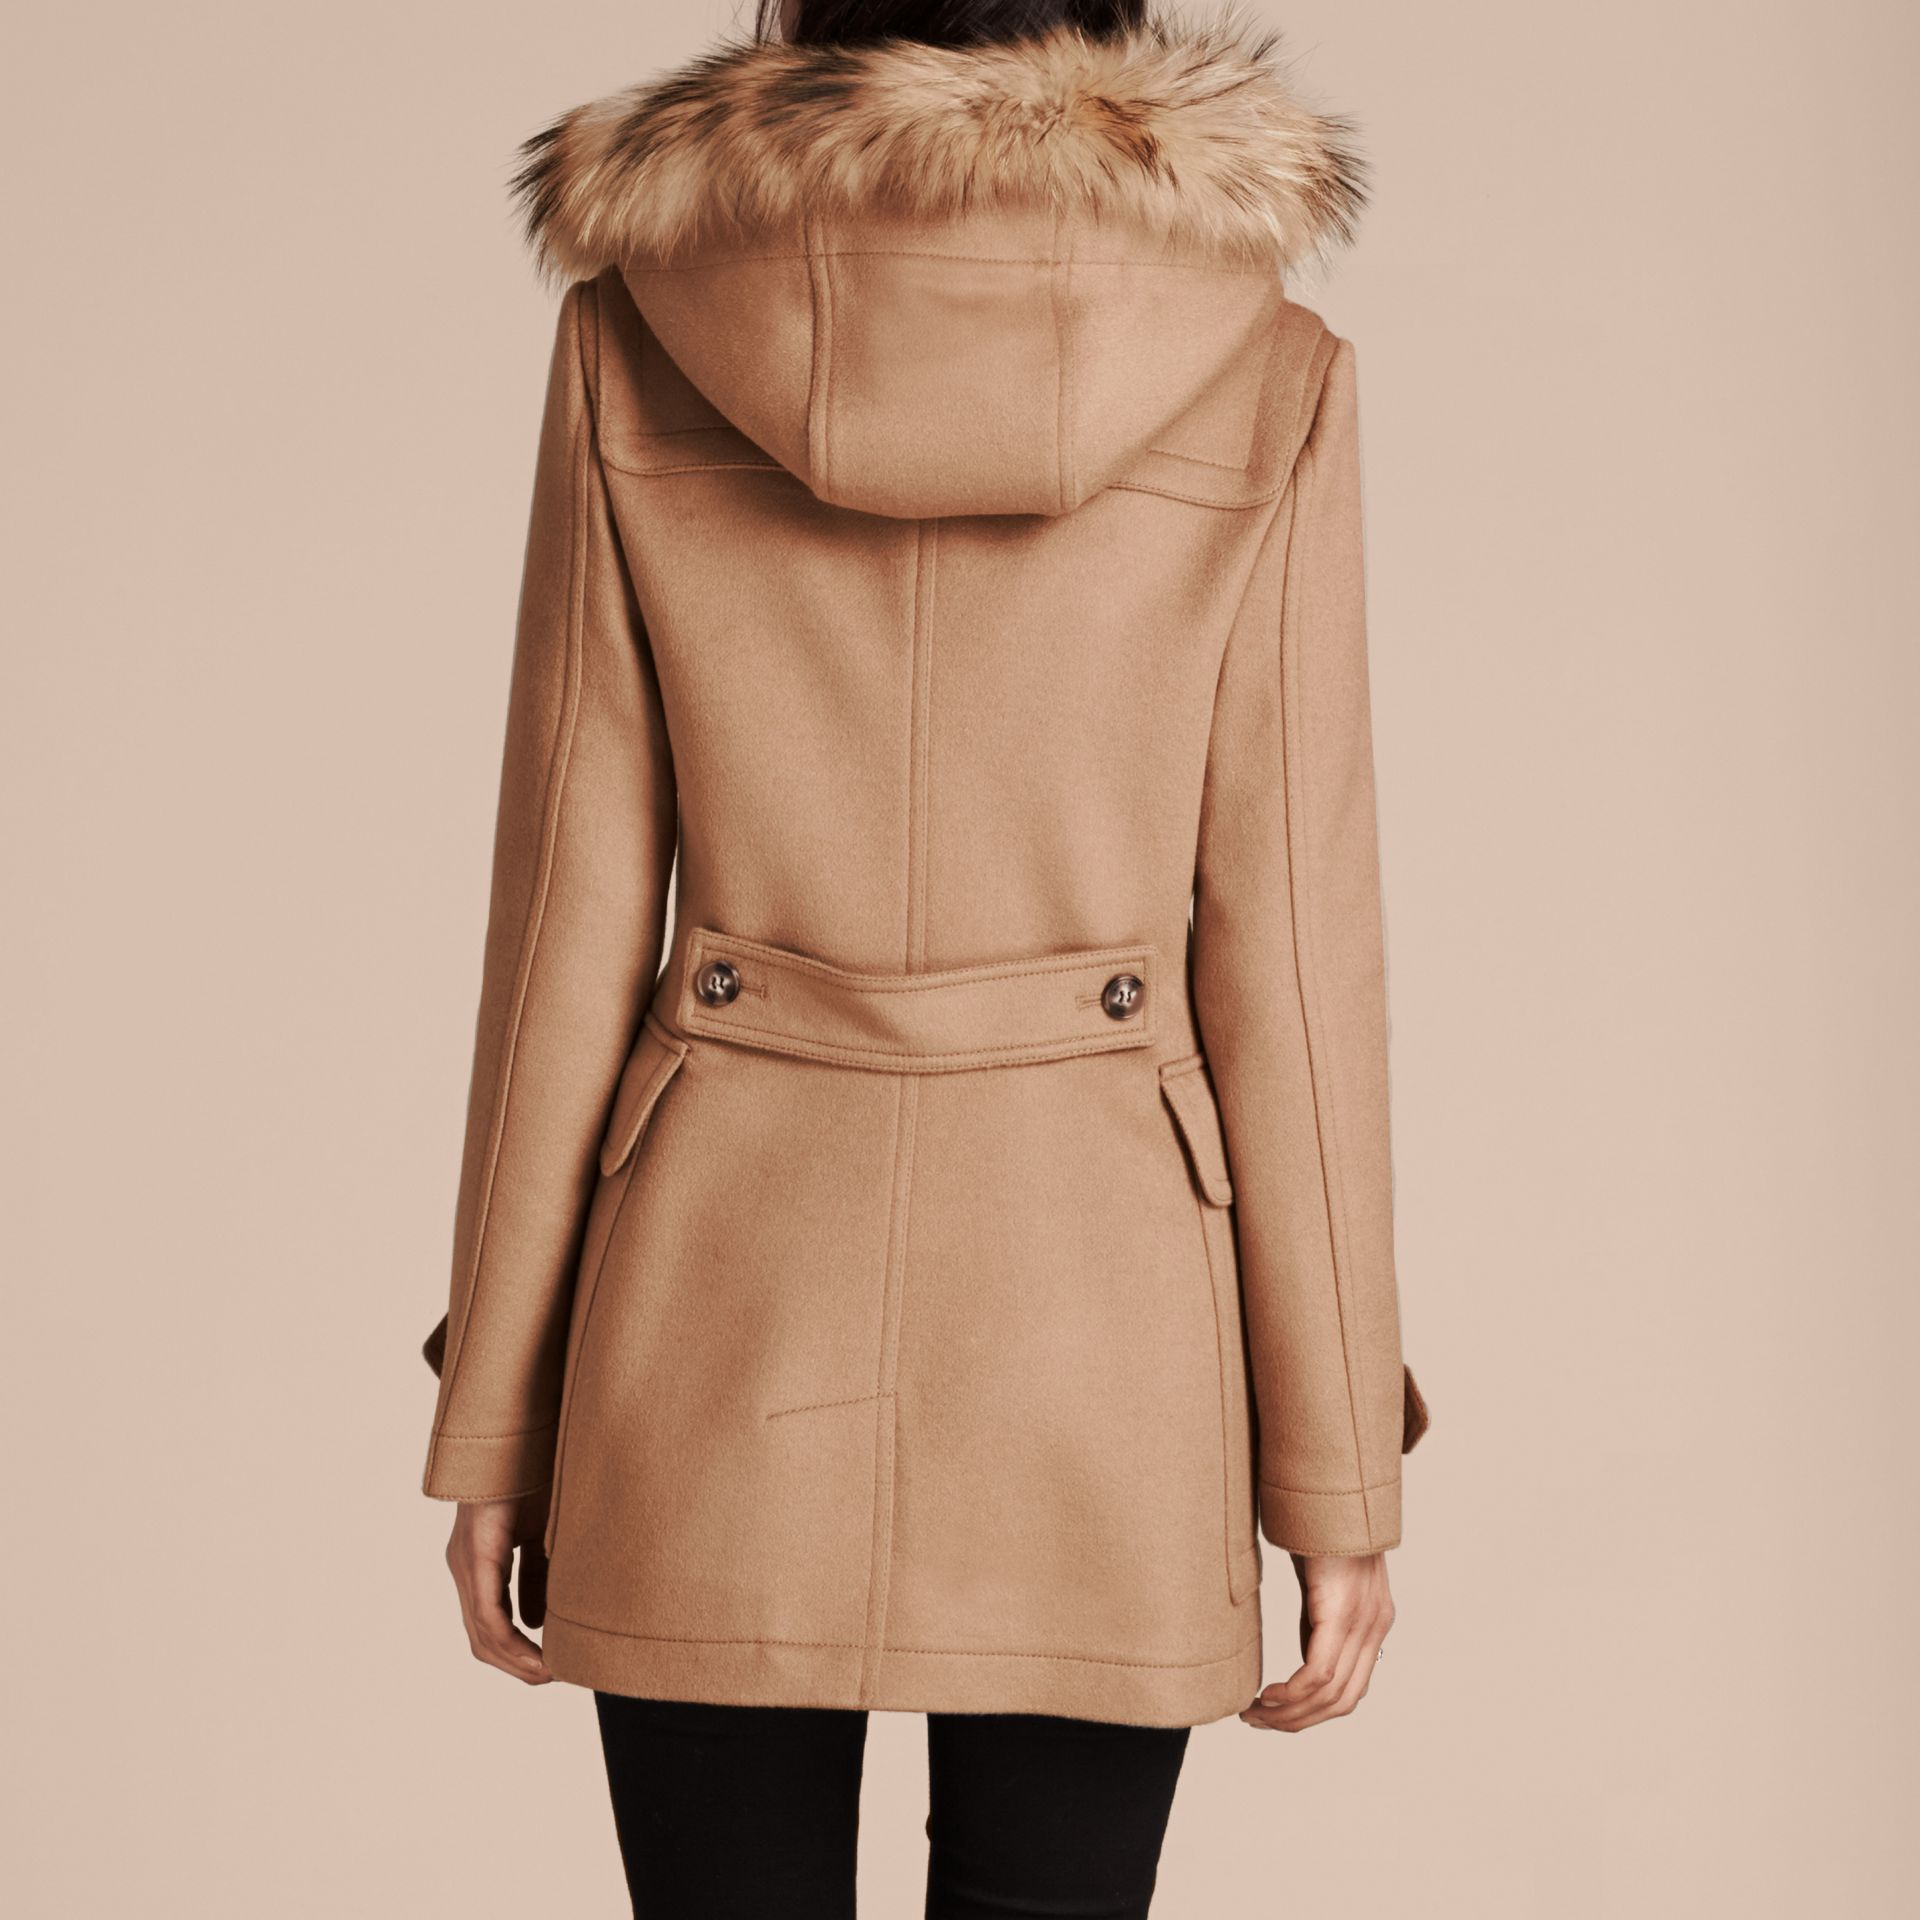 Camel Detachable Fur Trim Wool Duffle Coat Camel - gallery image 2